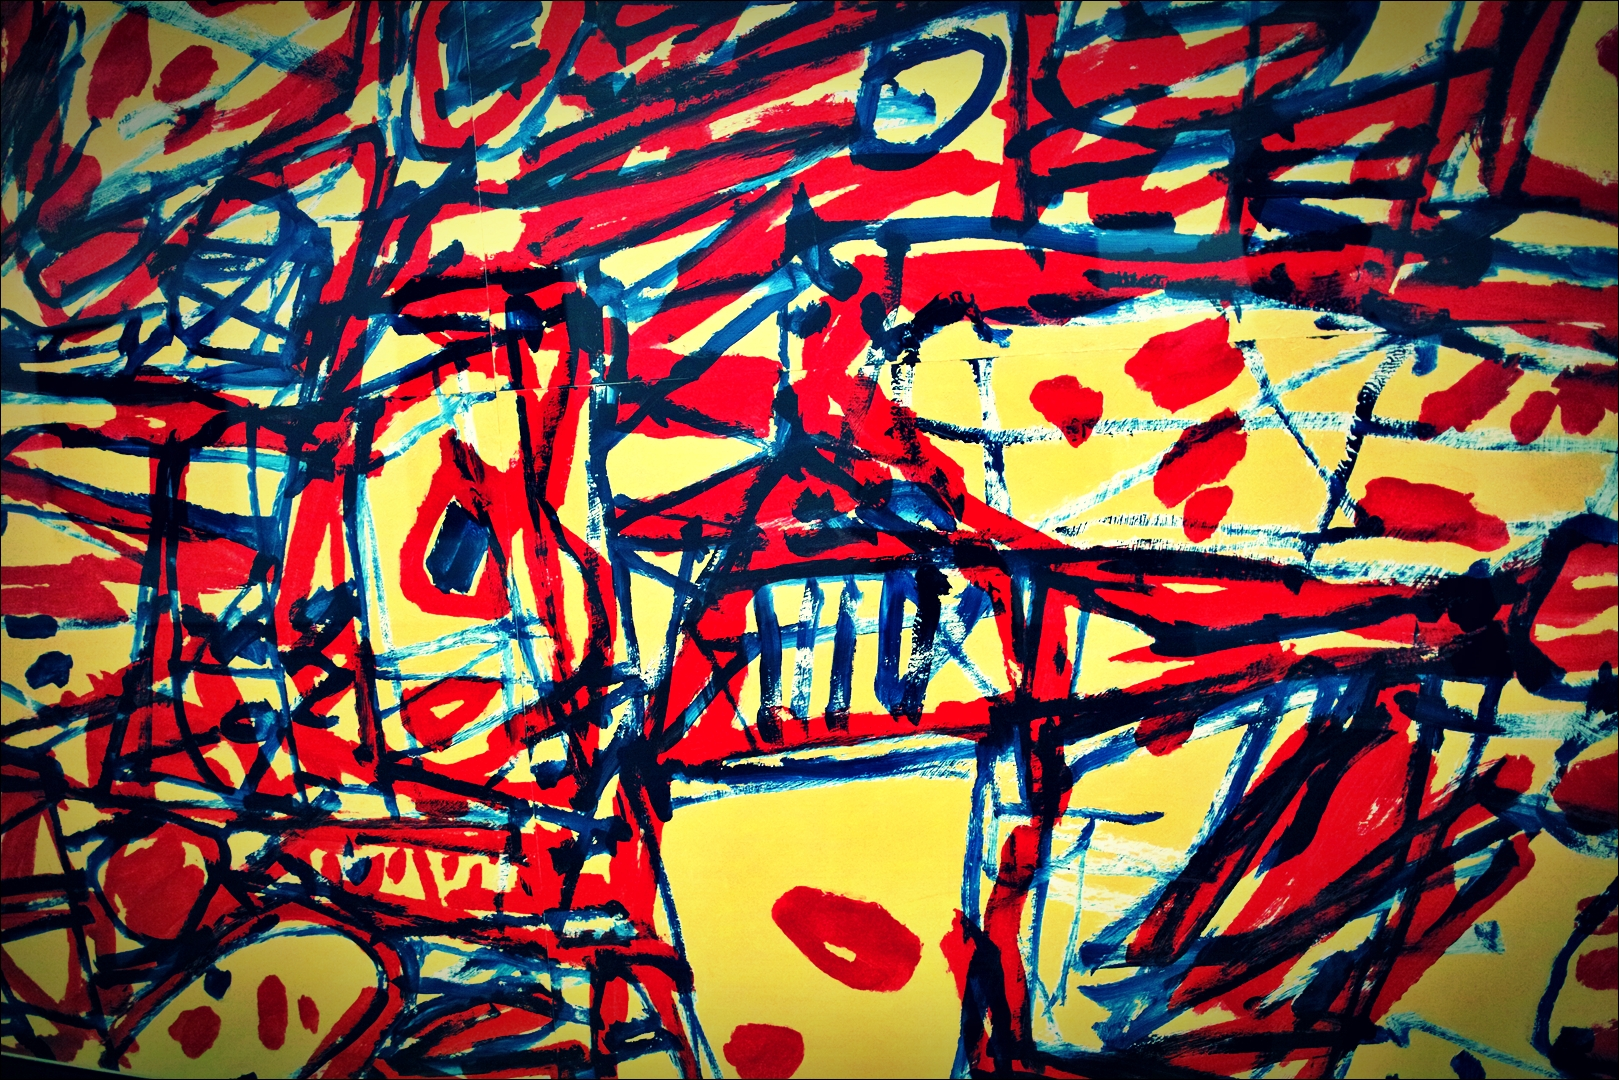 장 뒤뷔페(Jean Dubuffet) - Miro G42, 1983-'베라르도 현대미술관 Berardo Museum of Modern and Contemporary Art'